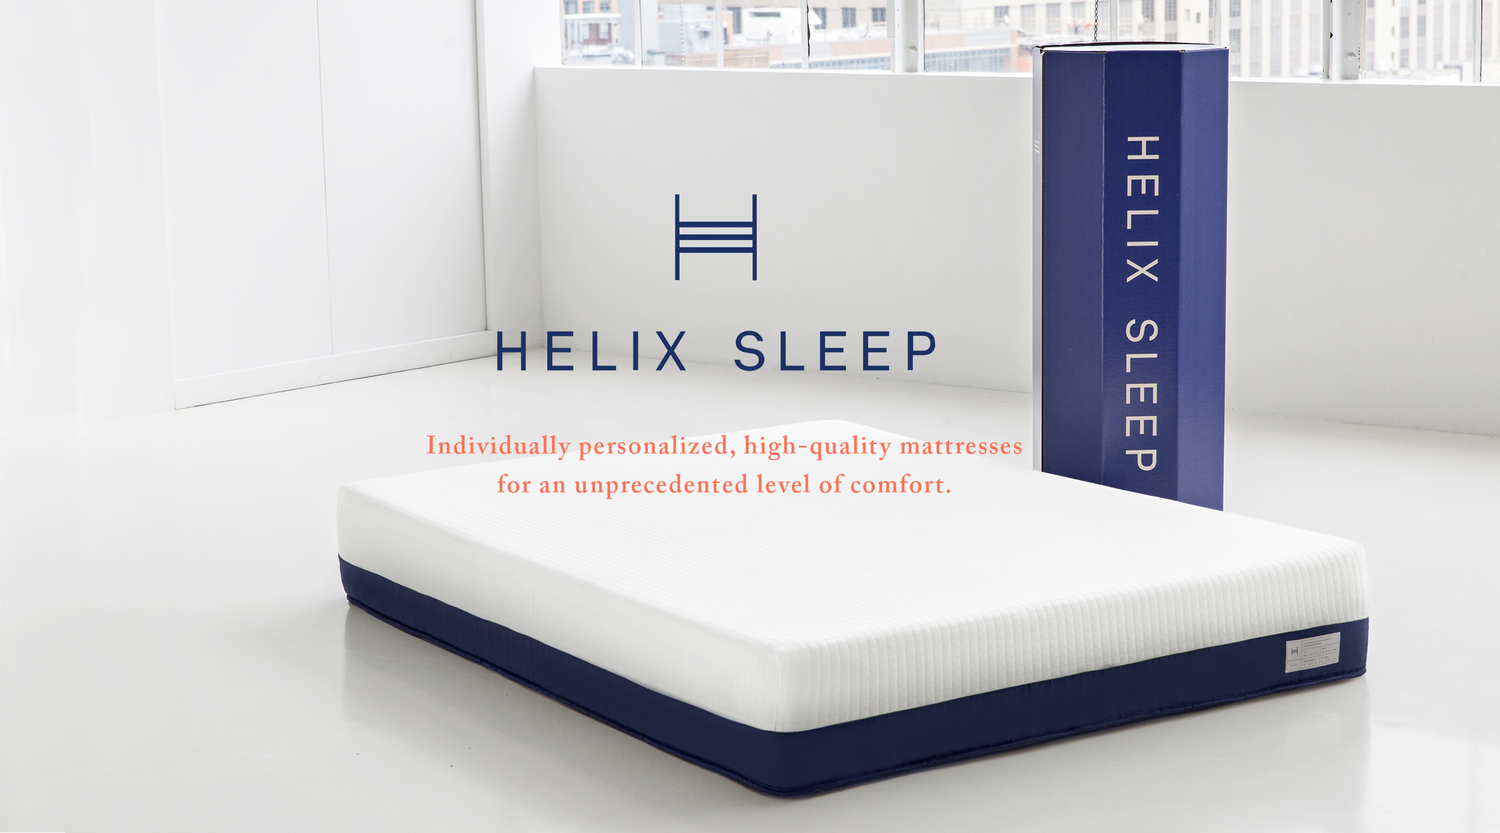 helix sleep